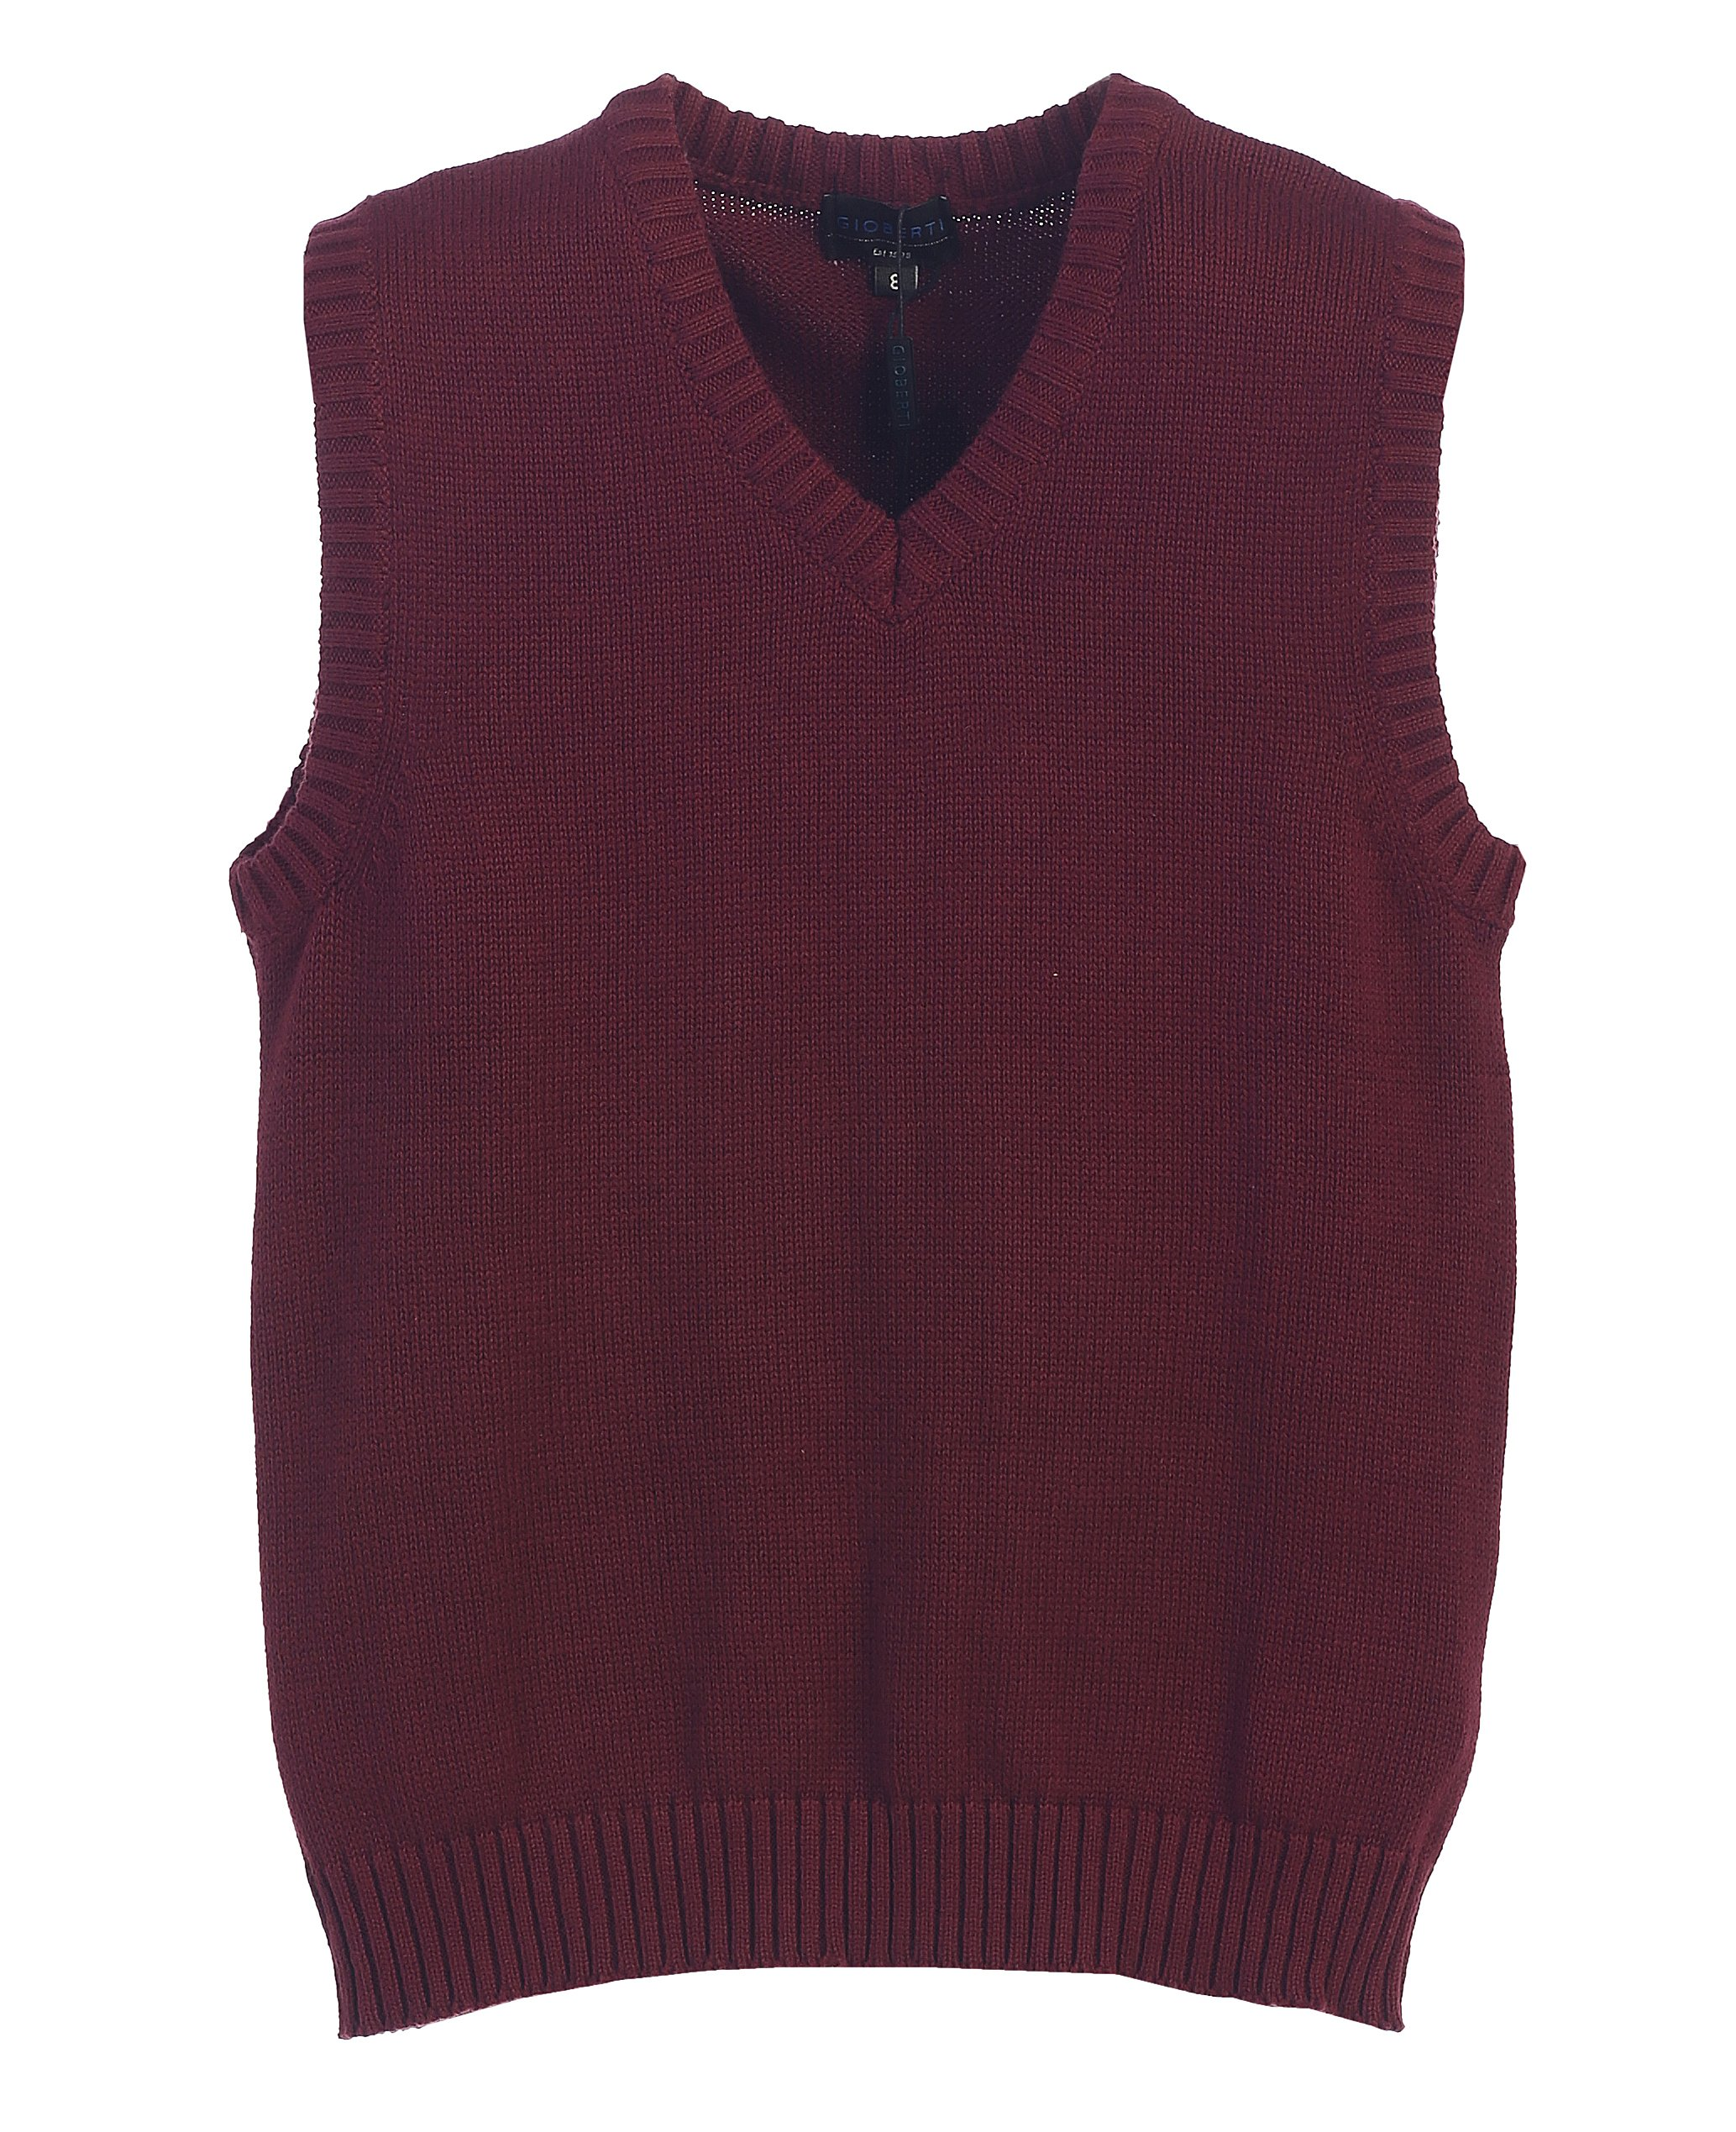 5d6b8b55104fc Gioberti Boy s V-Neck Knitted Pullover Sweater Vest product image